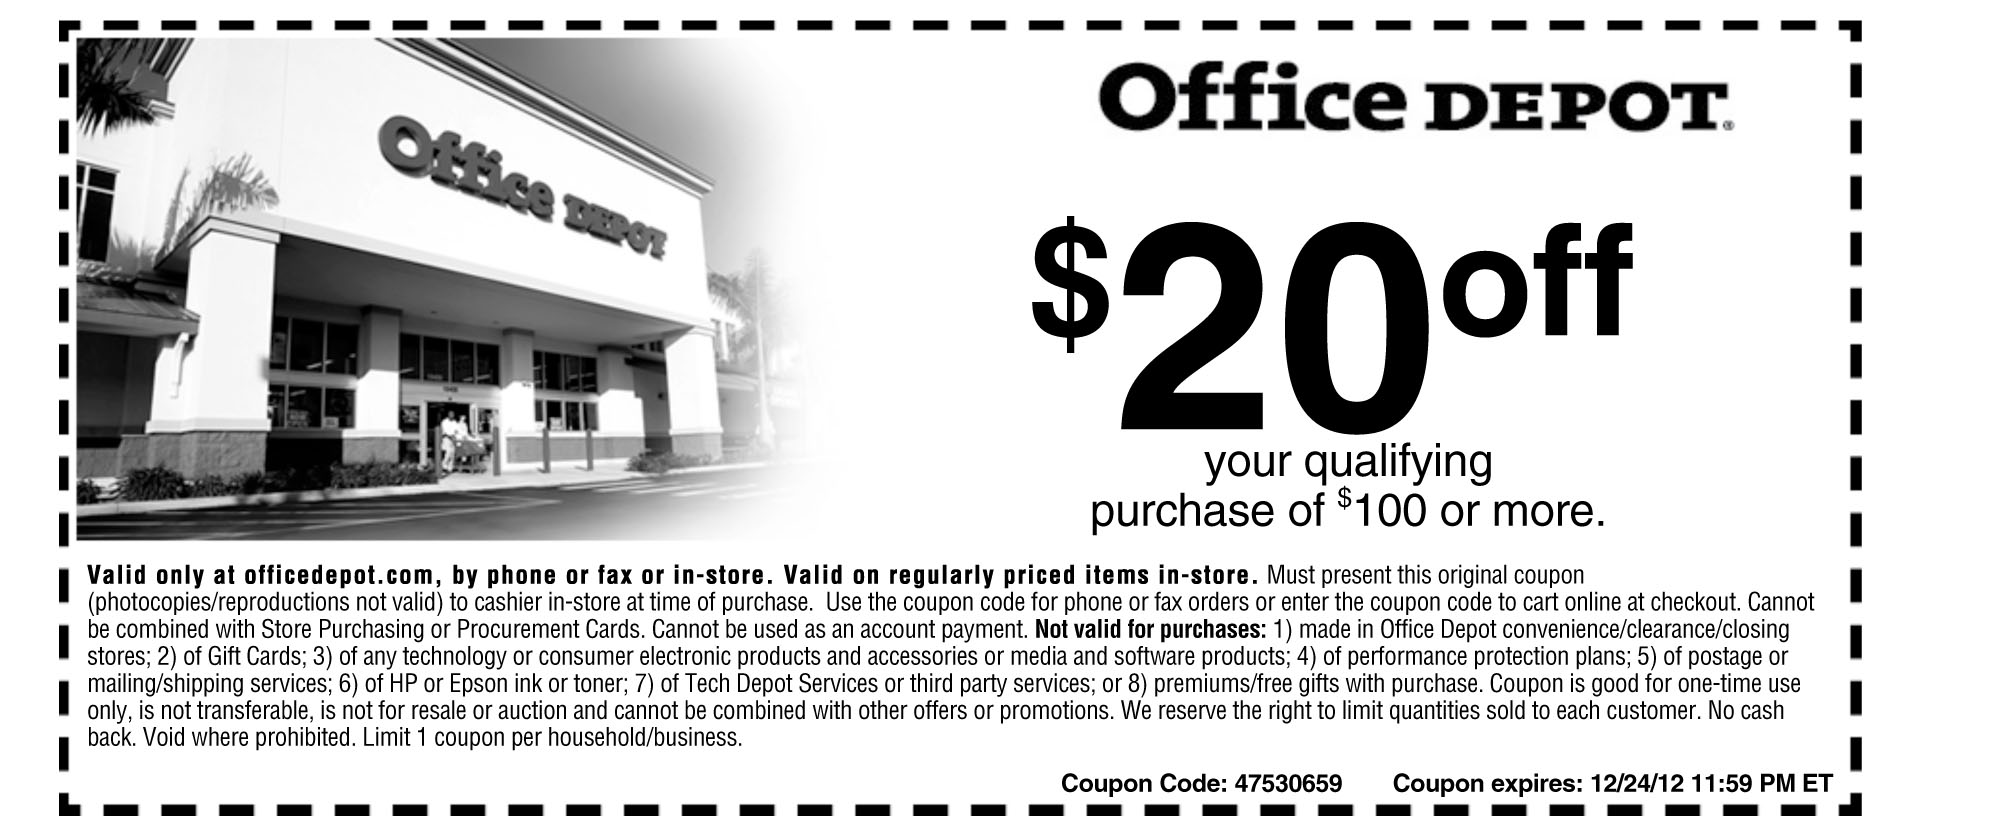 Office depot 20 off coupon print coupon king - Office depot discount code ...